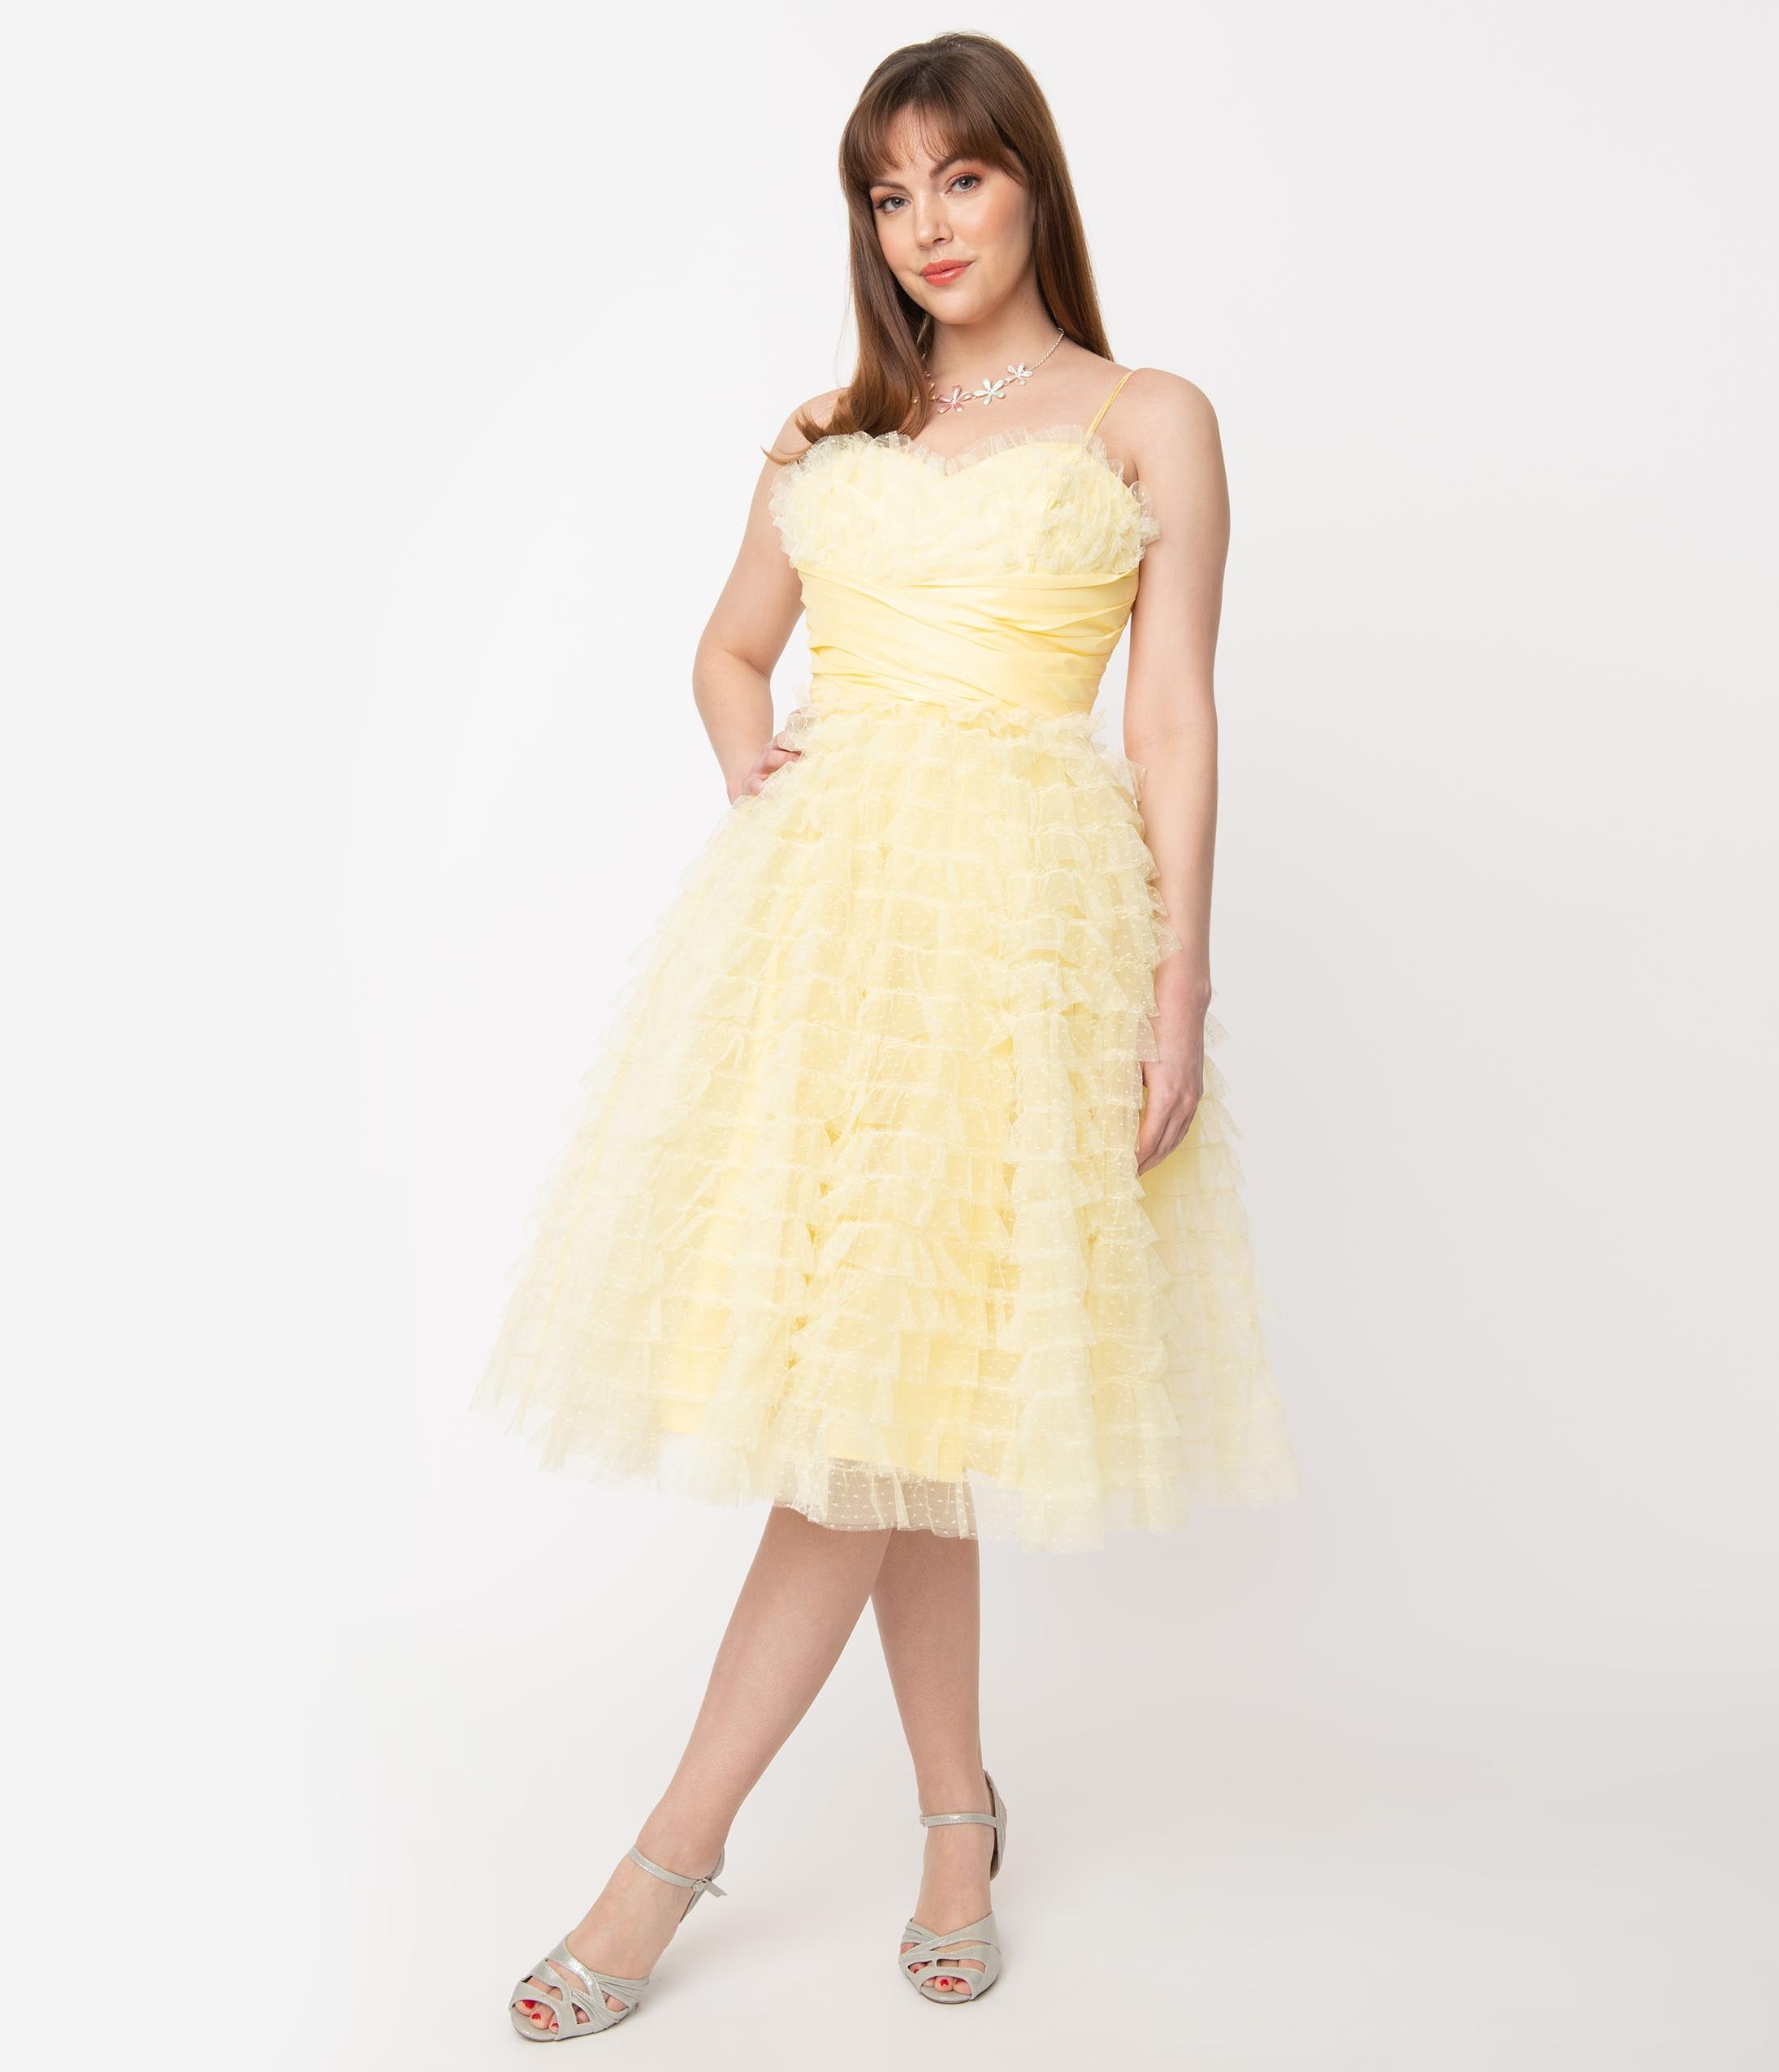 Vintage Evening Dresses and Formal Evening Gowns Unique Vintage 1950S Yellow Ruffled Tulle Cupcake Swing Dress $110.00 AT vintagedancer.com